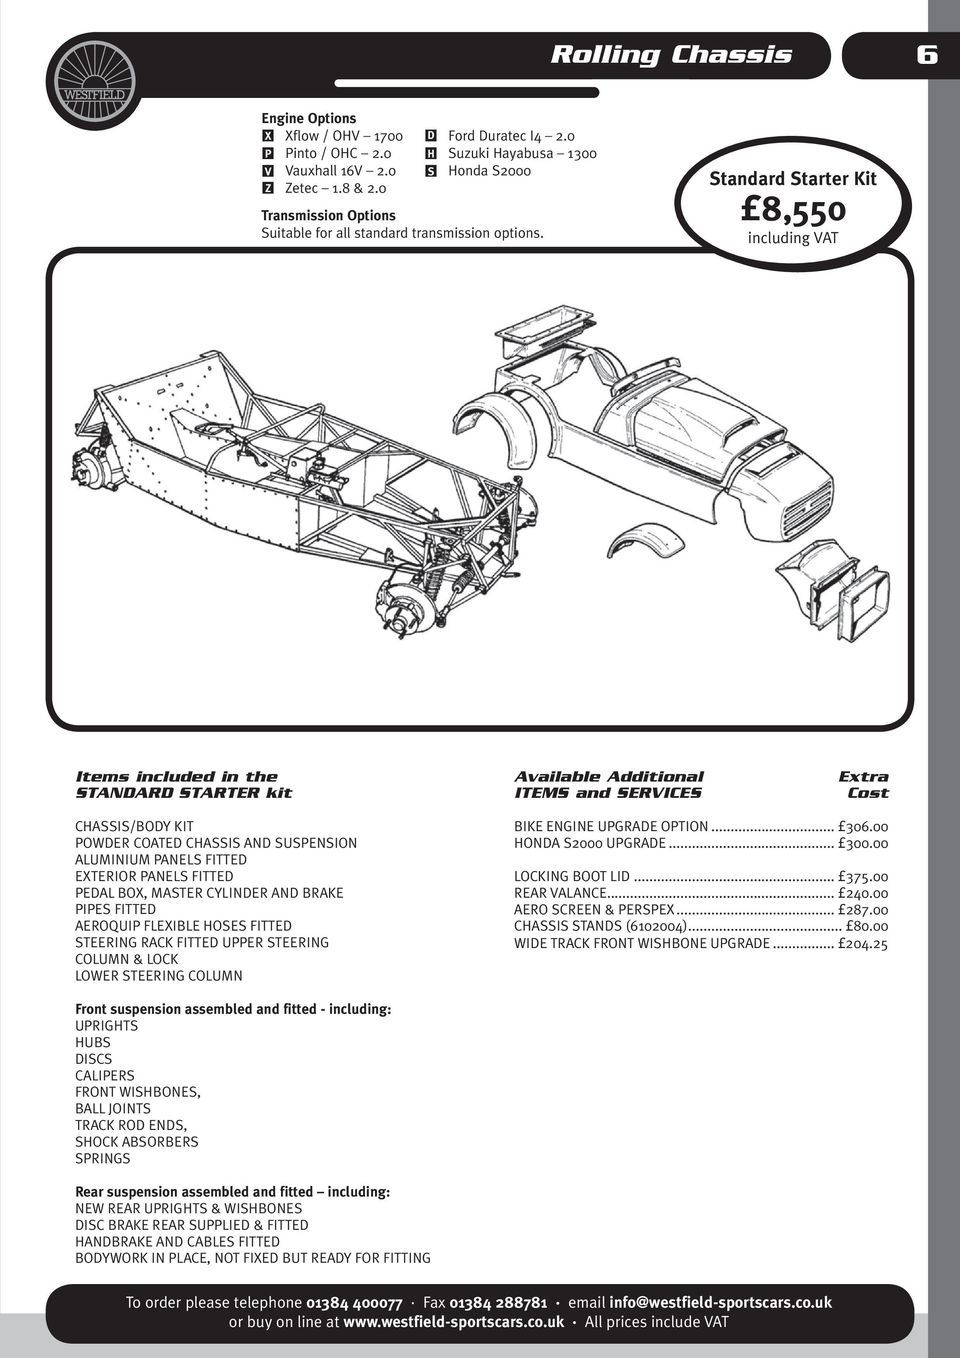 Westfield Car Sales Ltd Pdf Ford Engine Start Stand Wiring D H S Standard Starter Kit 8550 Including Vat Items Included In The Available Additional